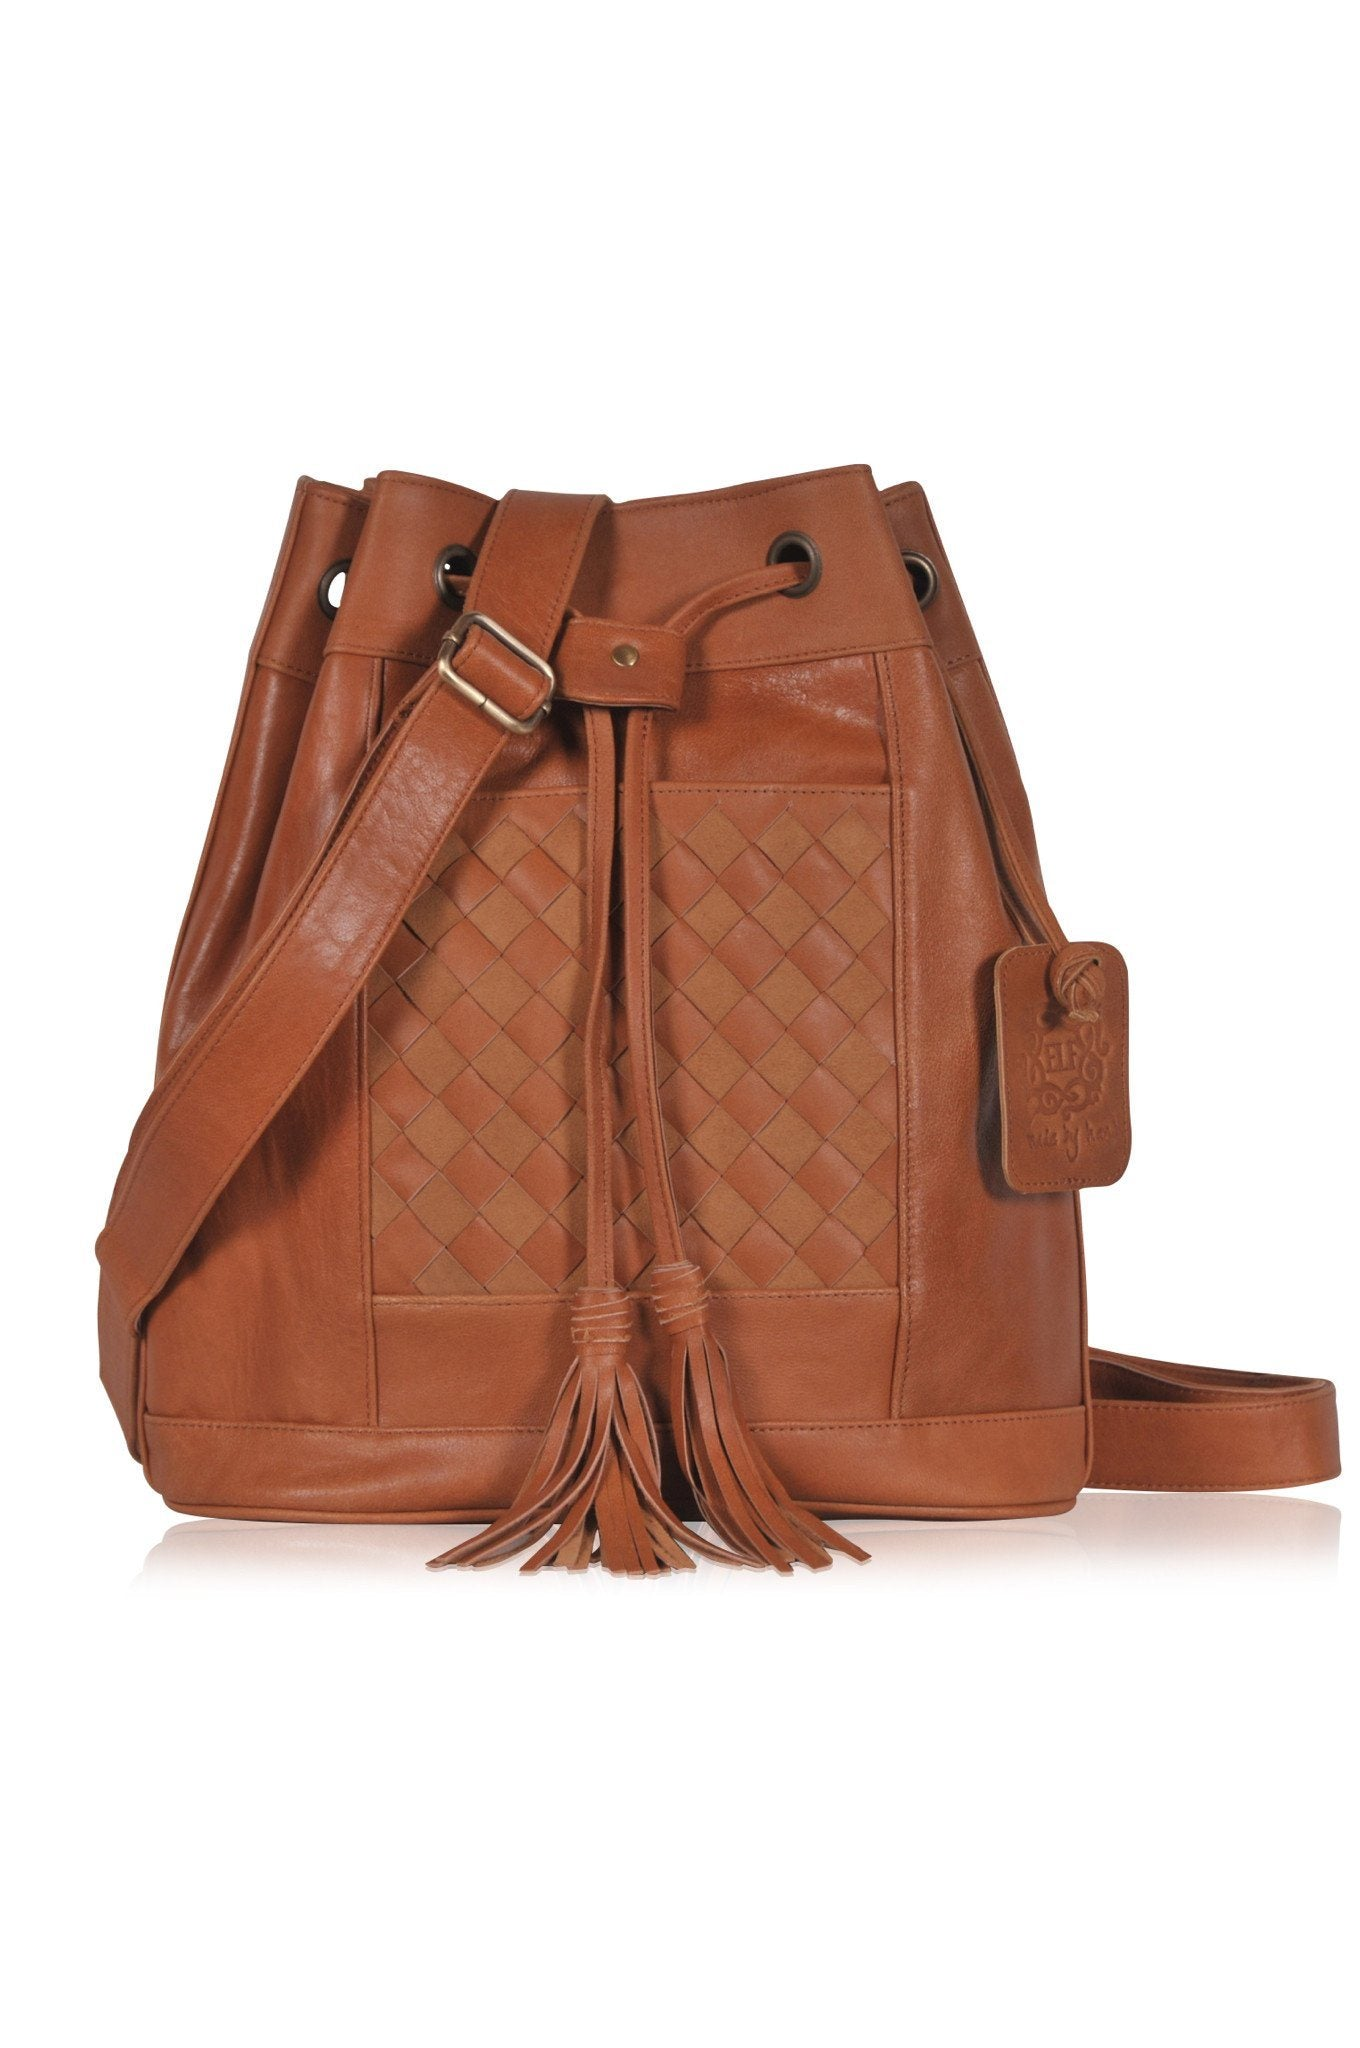 Tan leather back pack